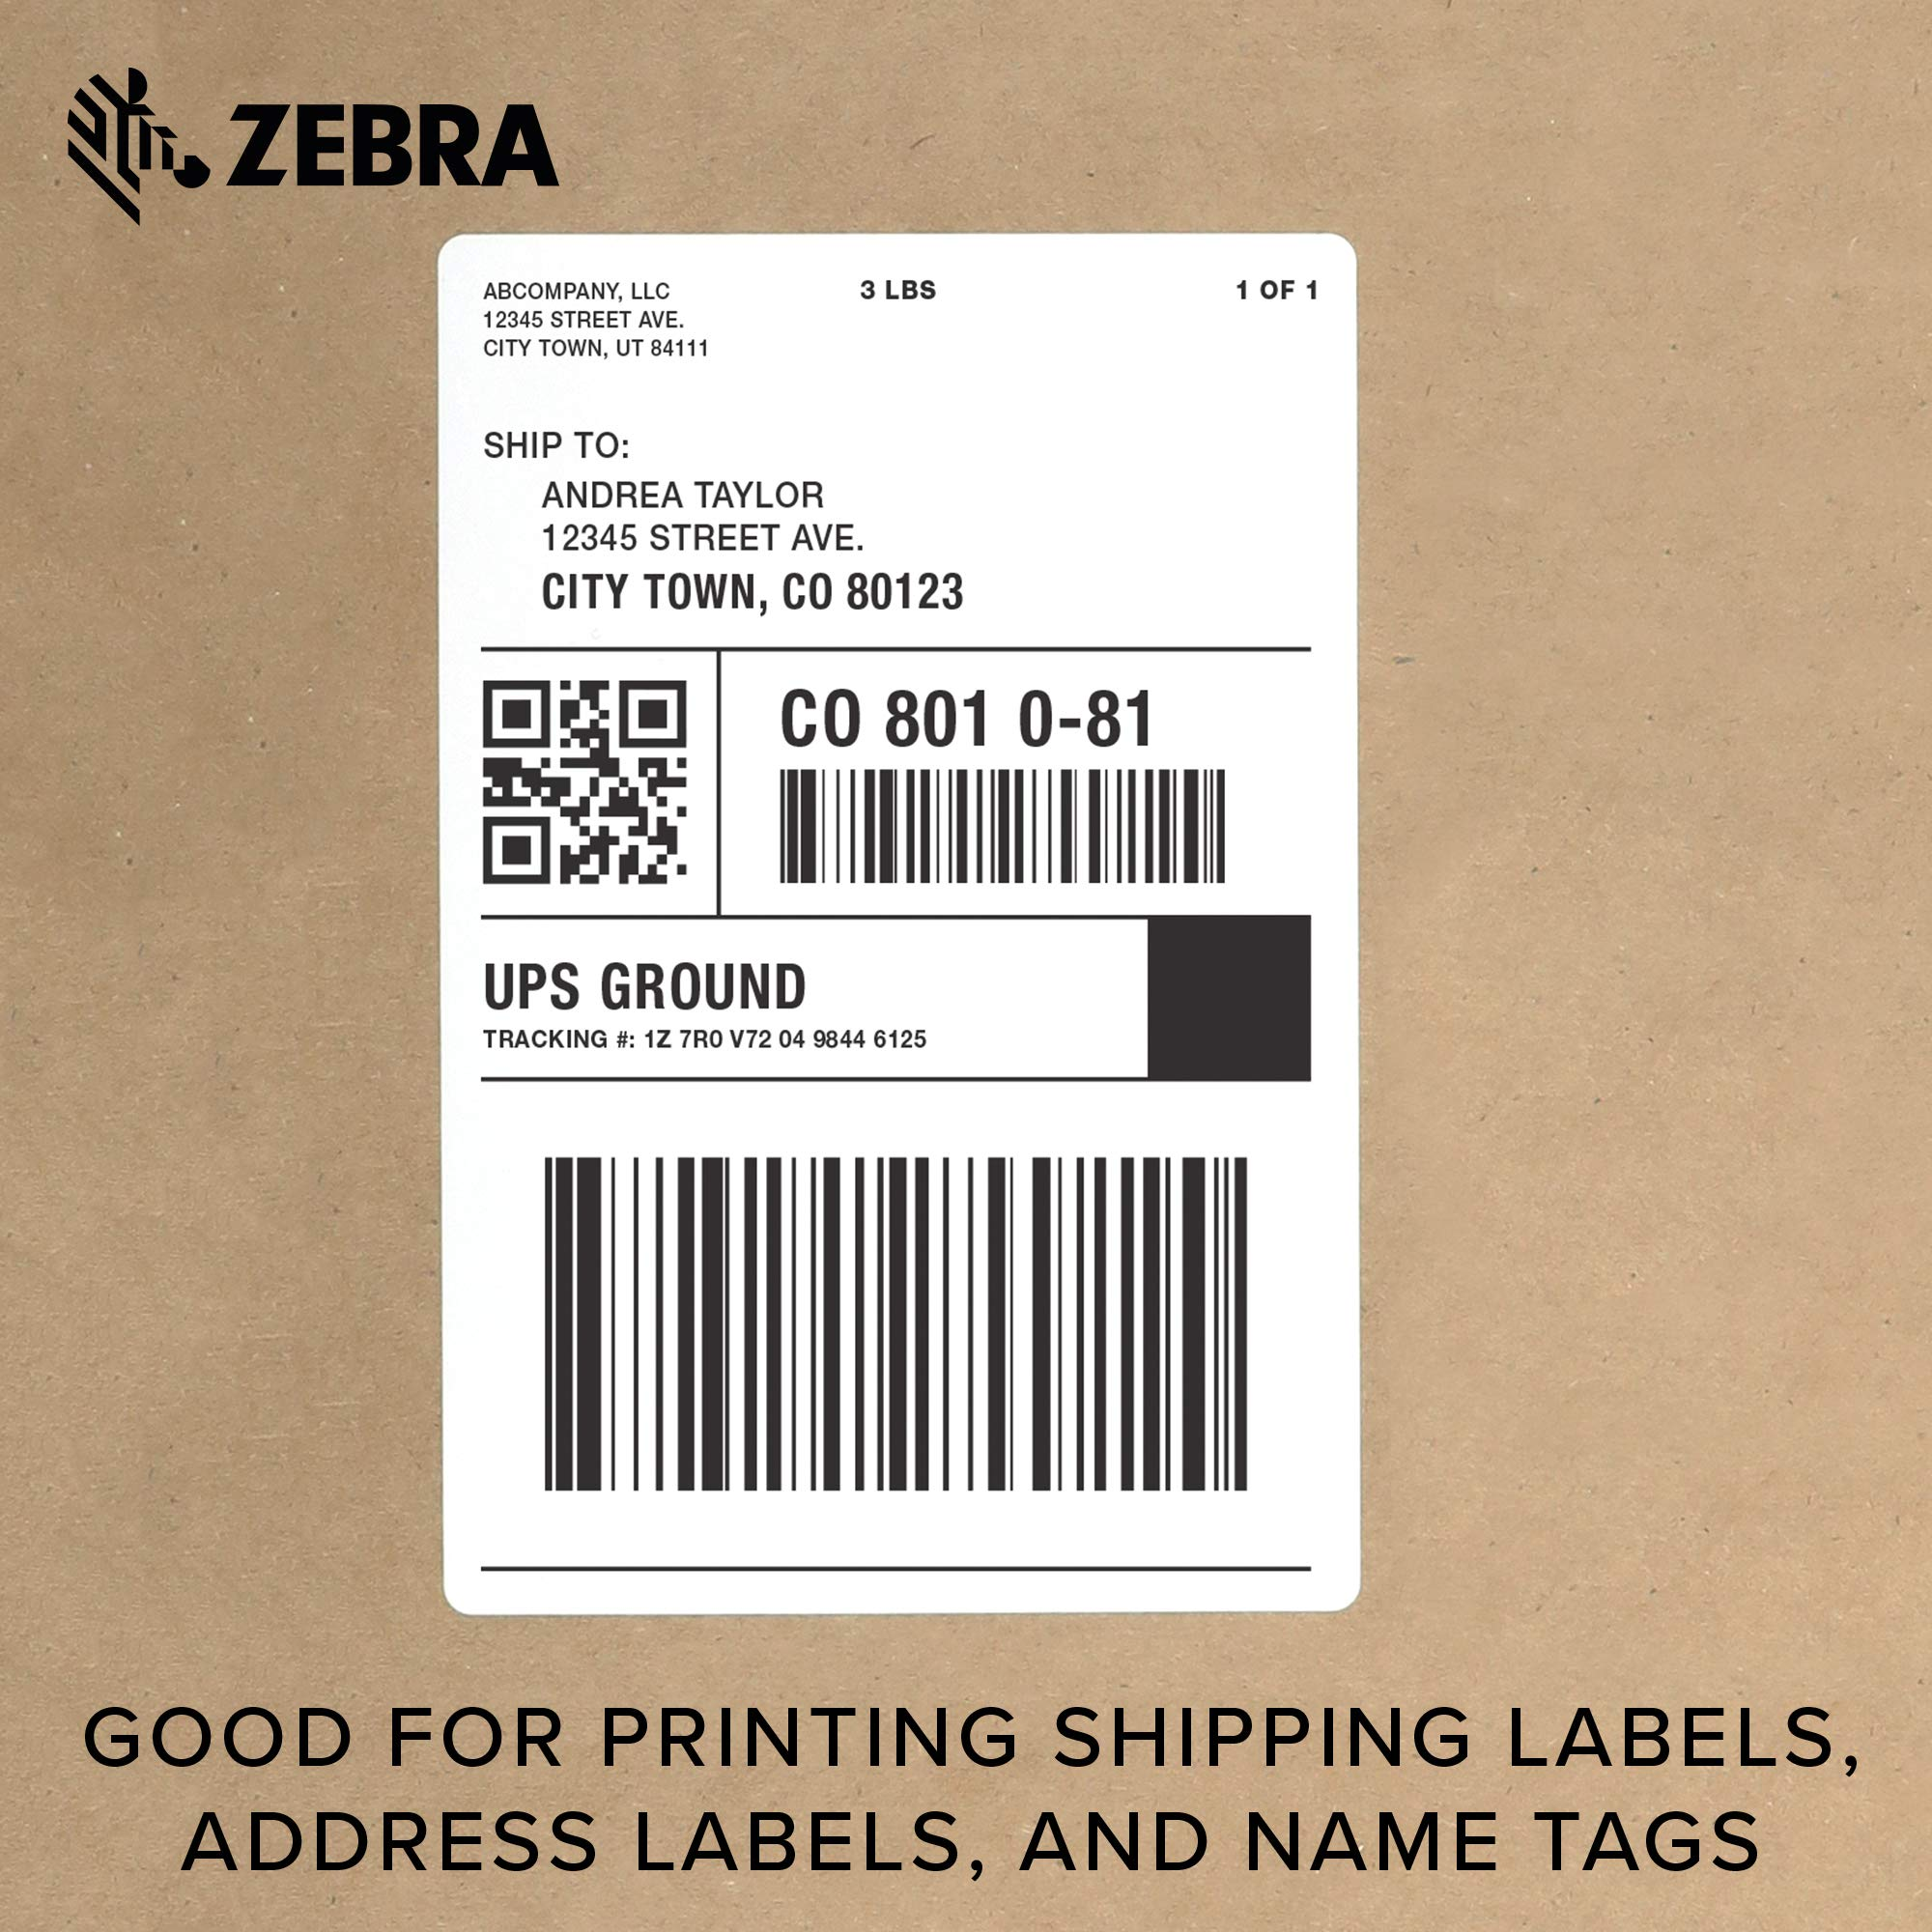 Zebra - GX420d Direct Thermal Desktop Printer for Labels, Receipts, Barcodes, Tags, and Wrist Bands - Print Width of 4 in - USB, Serial, and Ethernet Port Connectivity (Includes Peeler) by ZEBRA (Image #7)